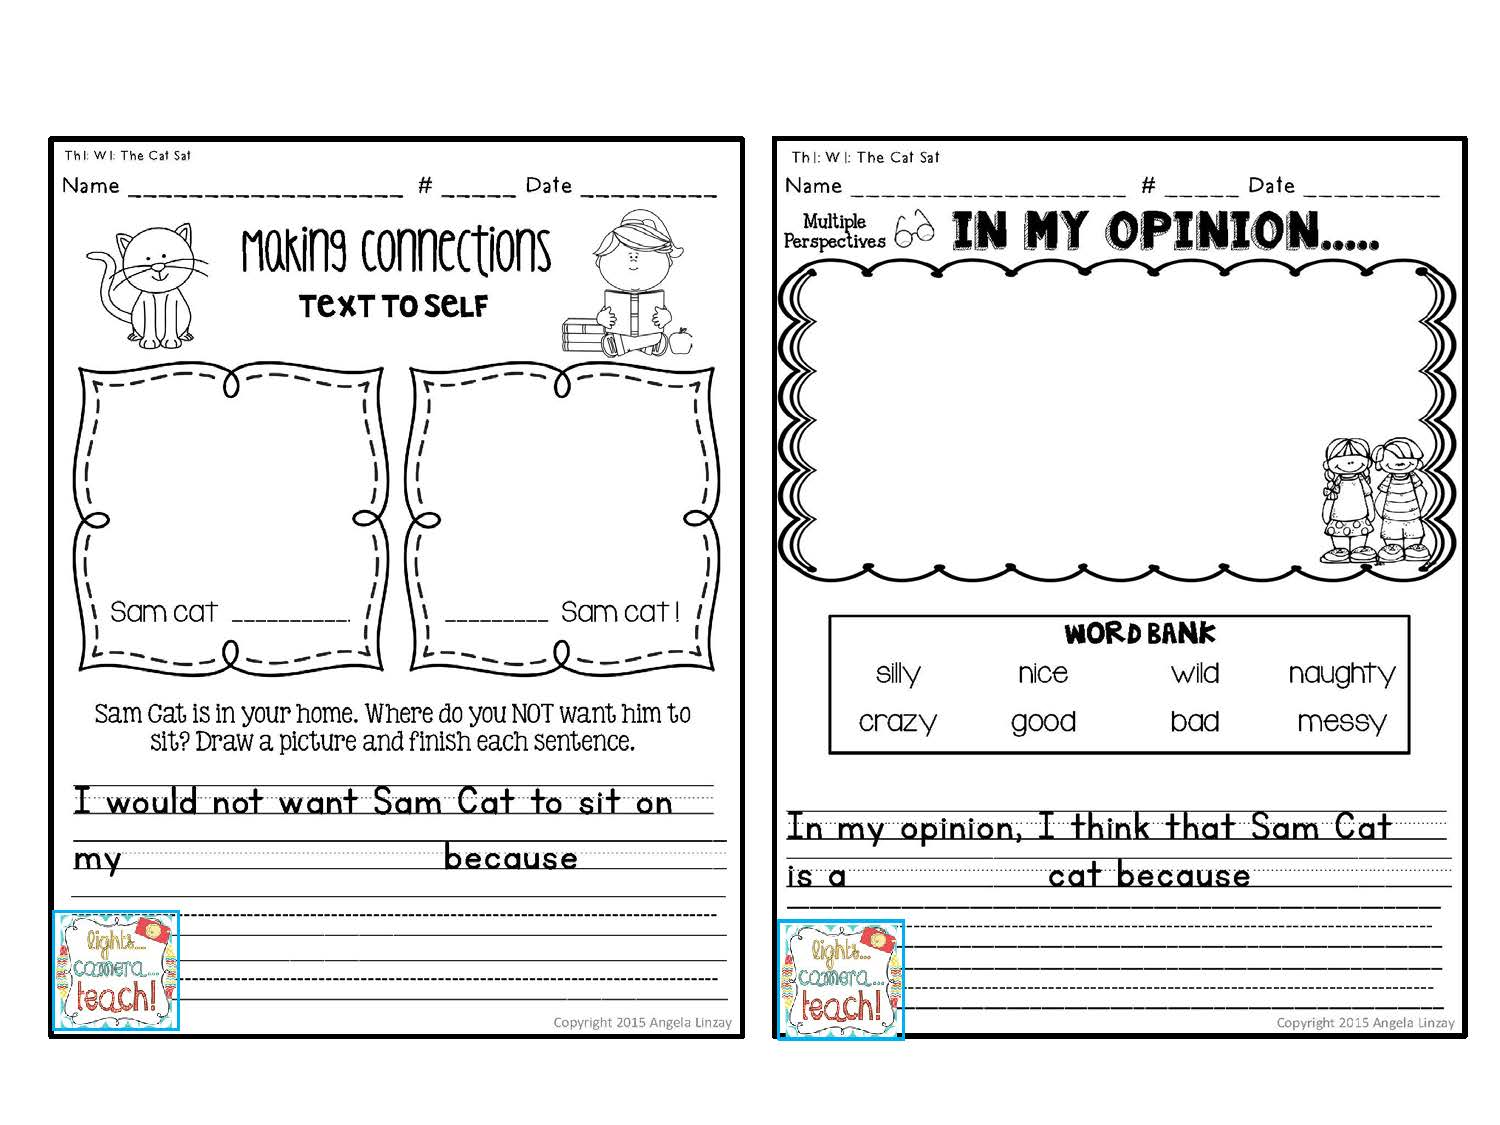 Houghton Mifflin Math Grade 3 Worksheets - 28 templates - Coloring ...